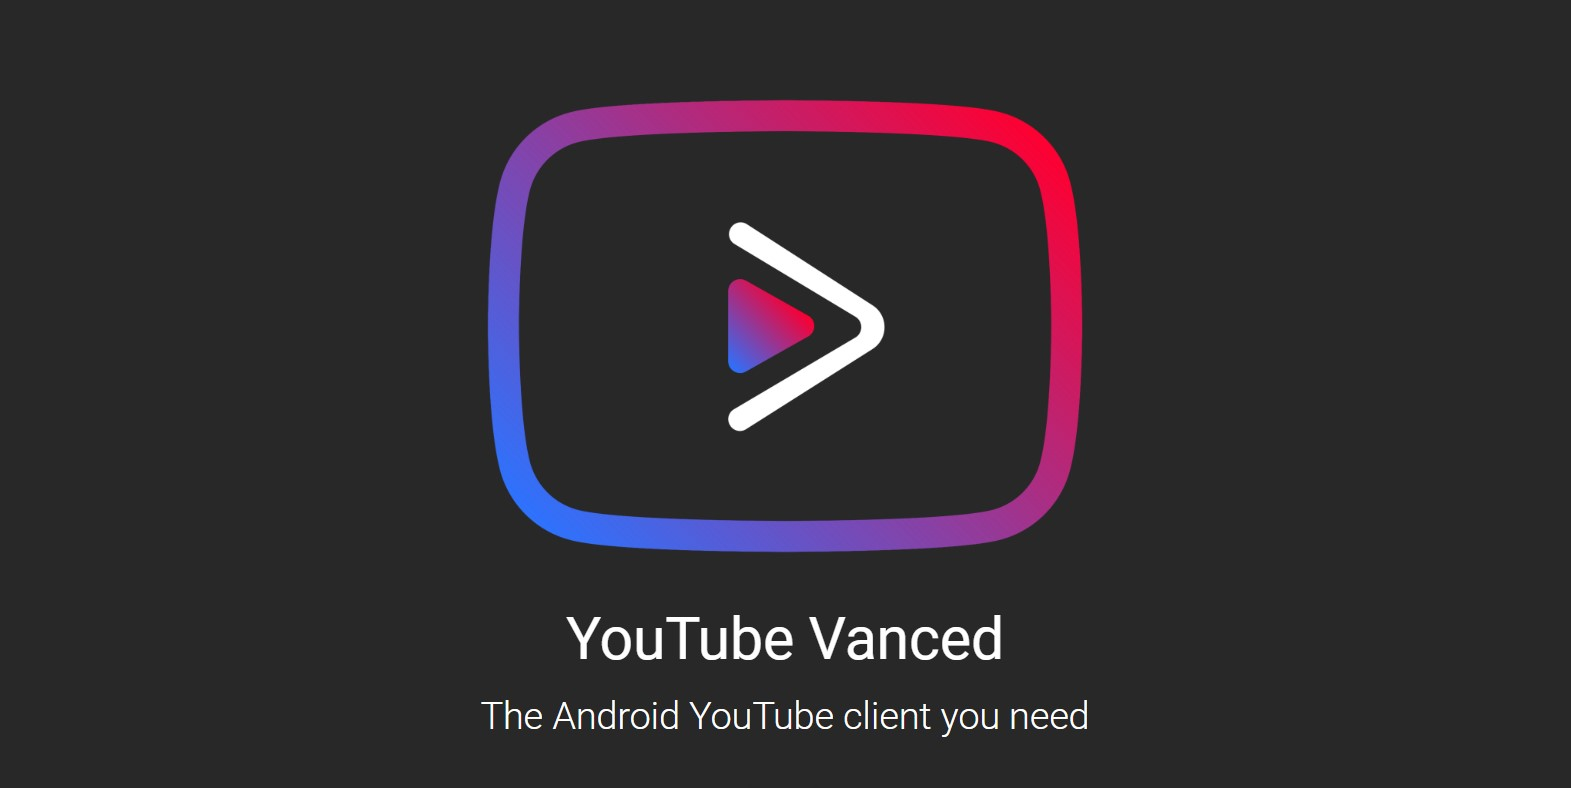 Latest YouTube Vanced v16 released | APK Download YouTube Vanced 16.02.35, Manager 2.3.0, and Music]